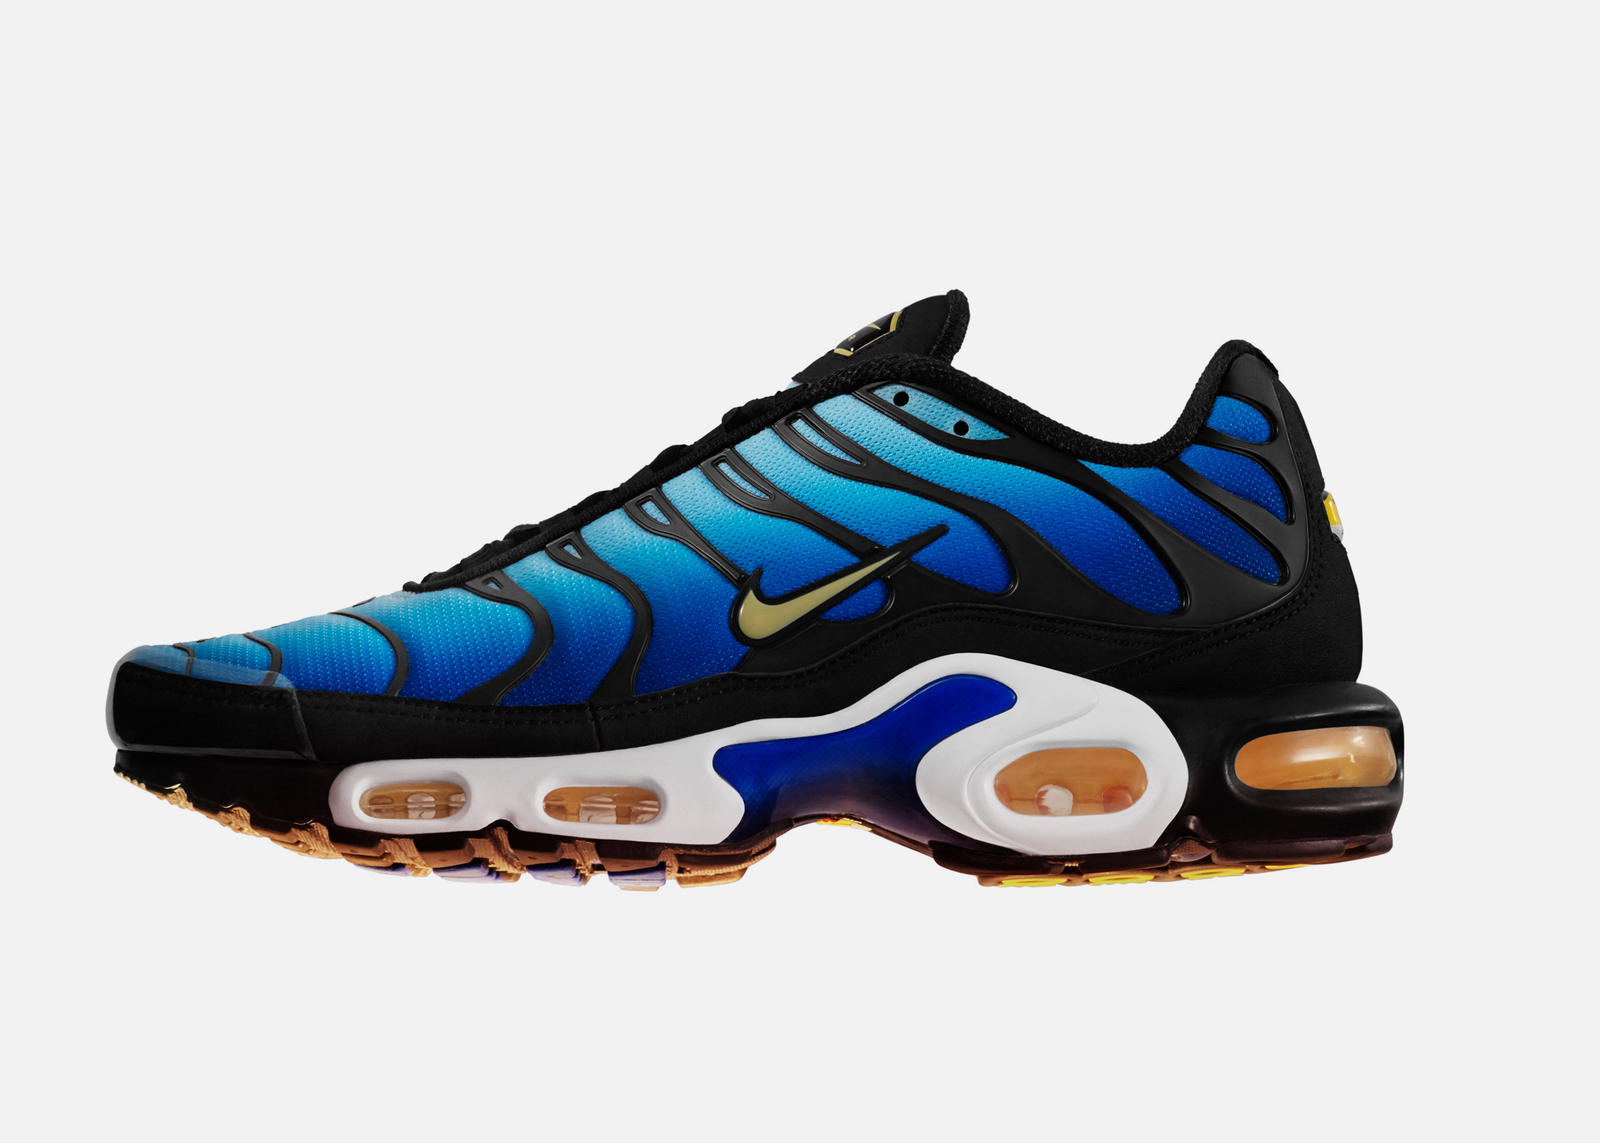 online retailer c1aca c8977 The Untold Story of the Nike Air Max Plus 20